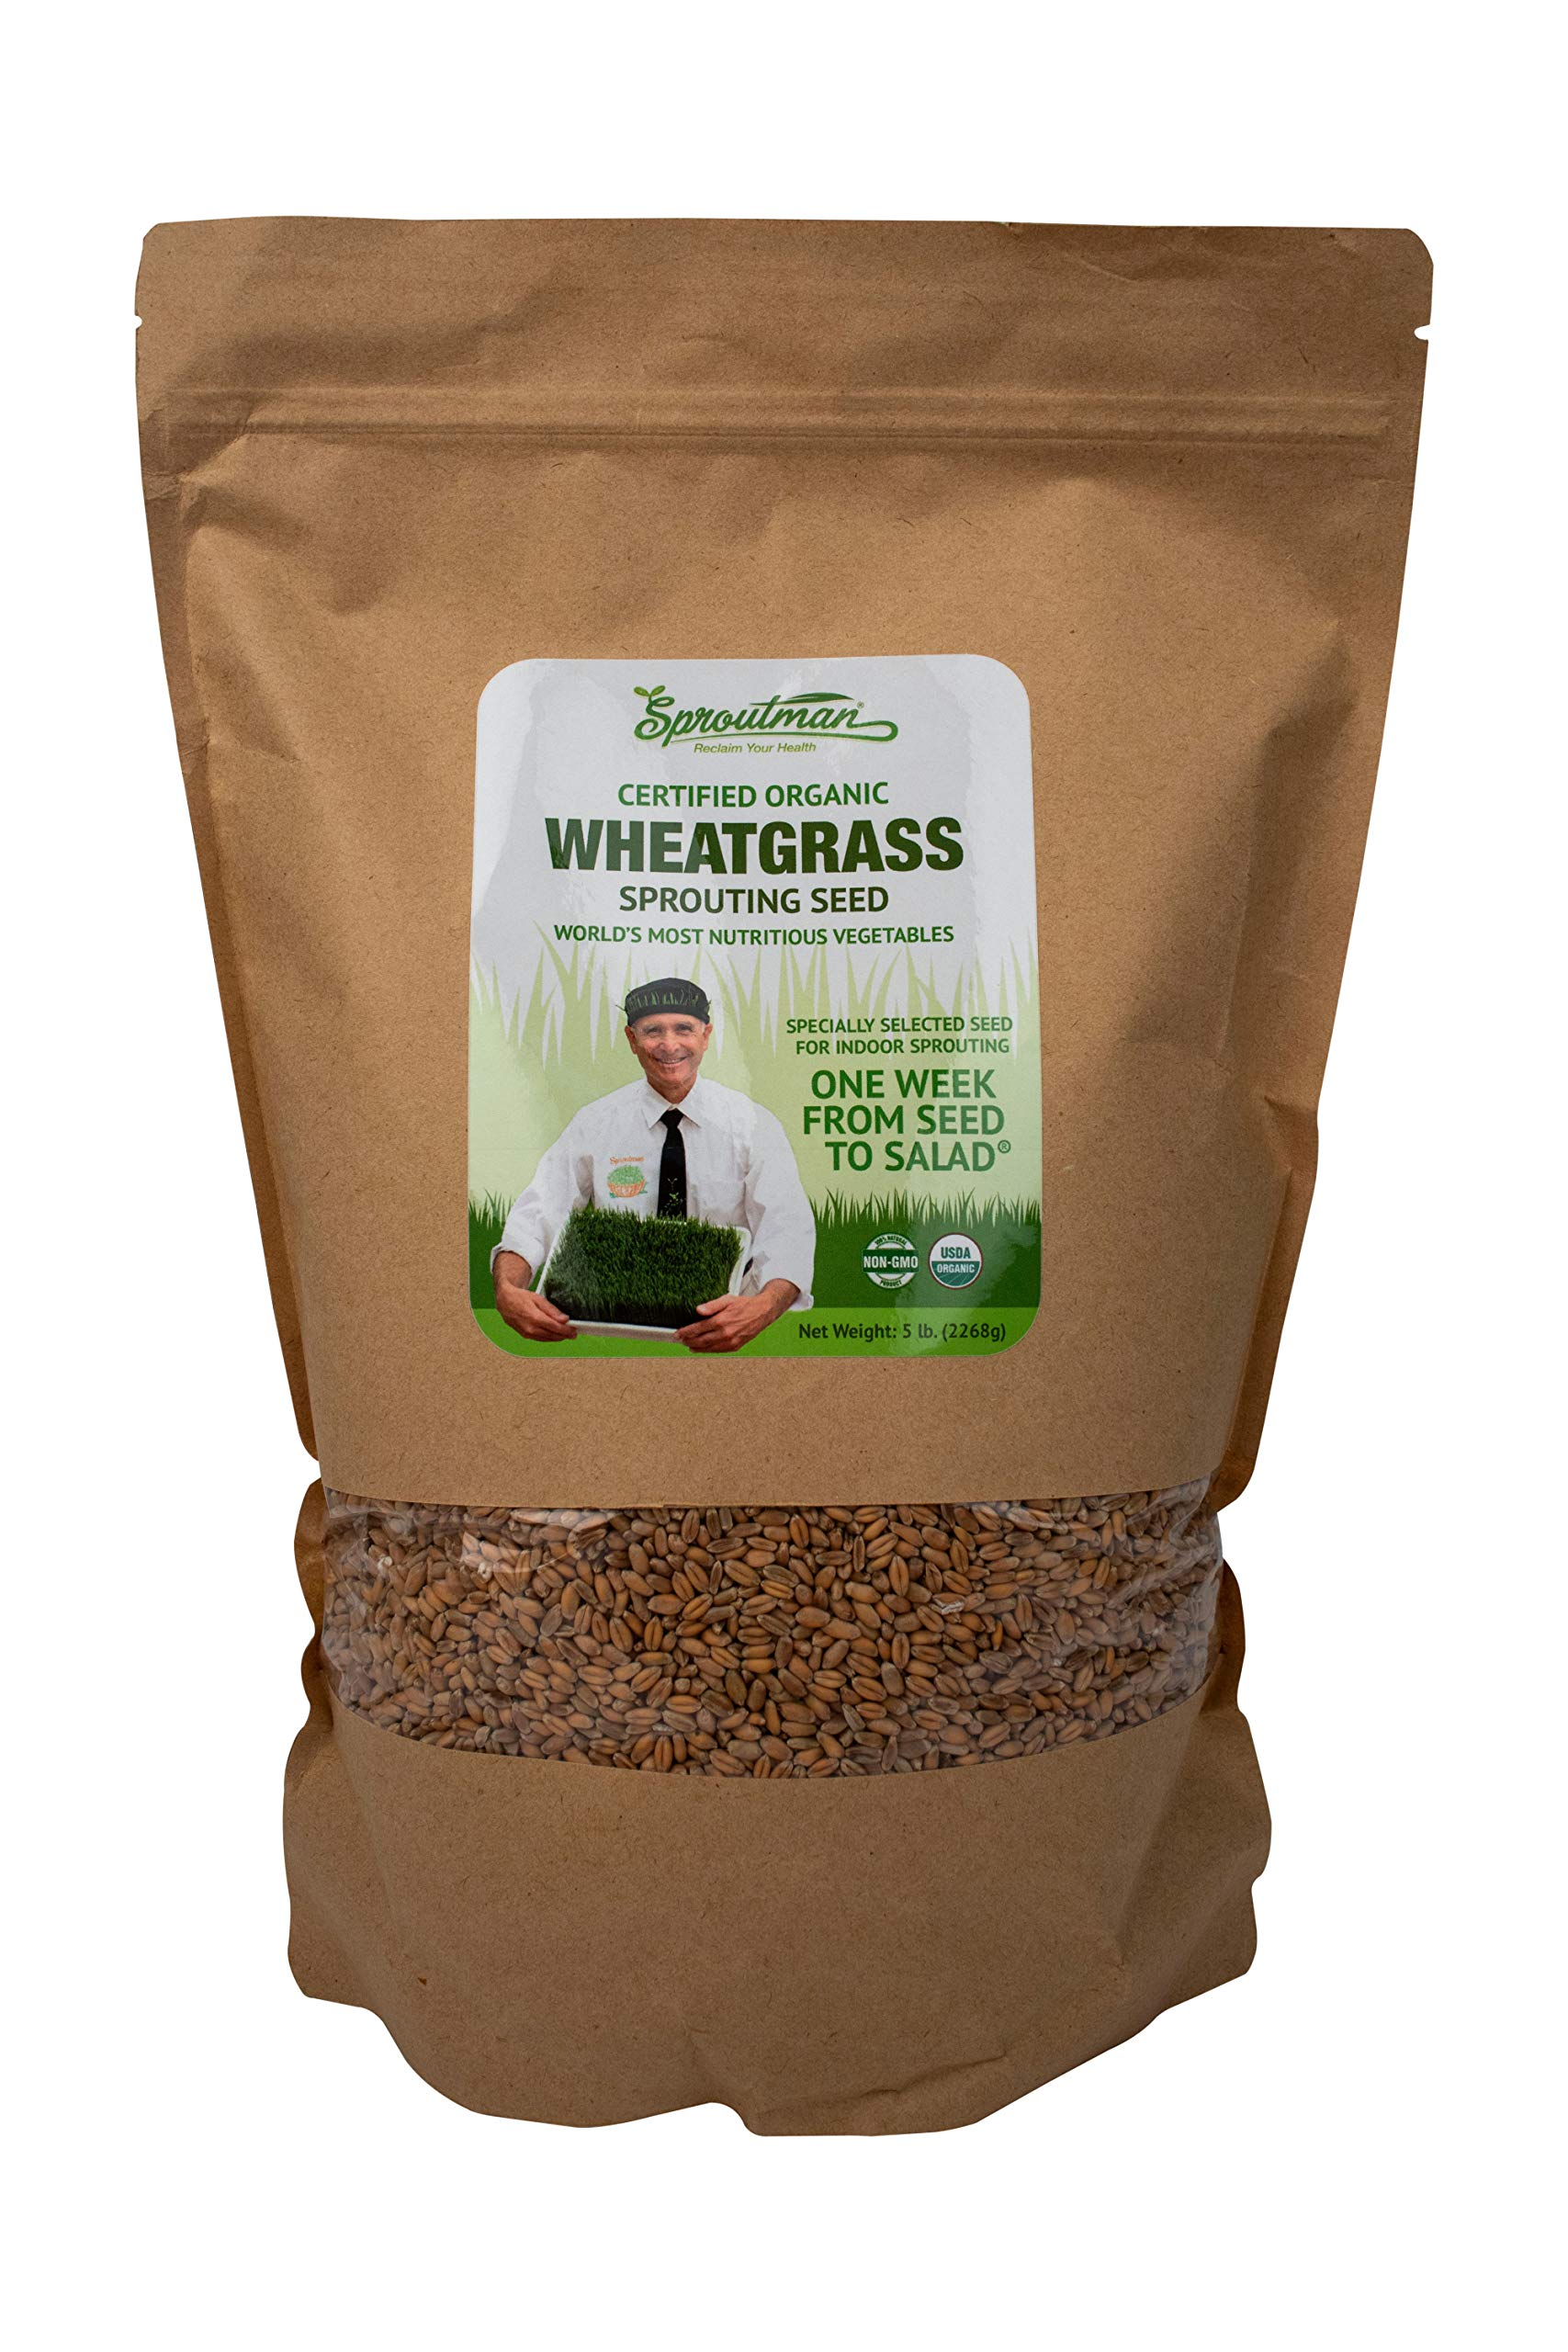 Sproutman Organic Wheatgrass Sprouting Seed - Wheatgrass Seeds for Sprouting, High Germination, Non-GMO, Certified Organic (5lb)